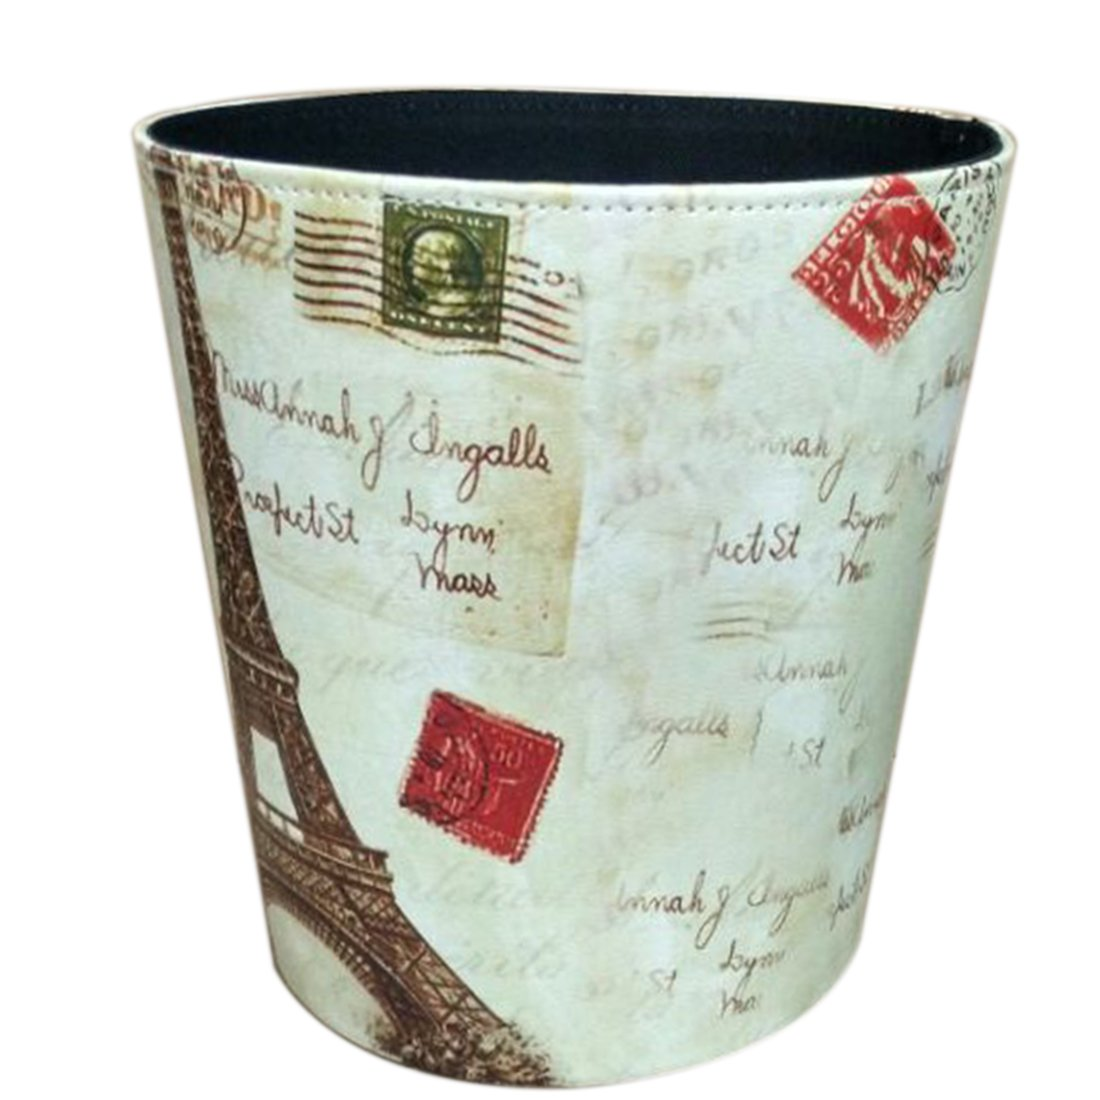 Wastebasket Trash Can for Bedroom Bathroom Kitchen Office Recycling Garbage Bin - Retro Tower Pattern